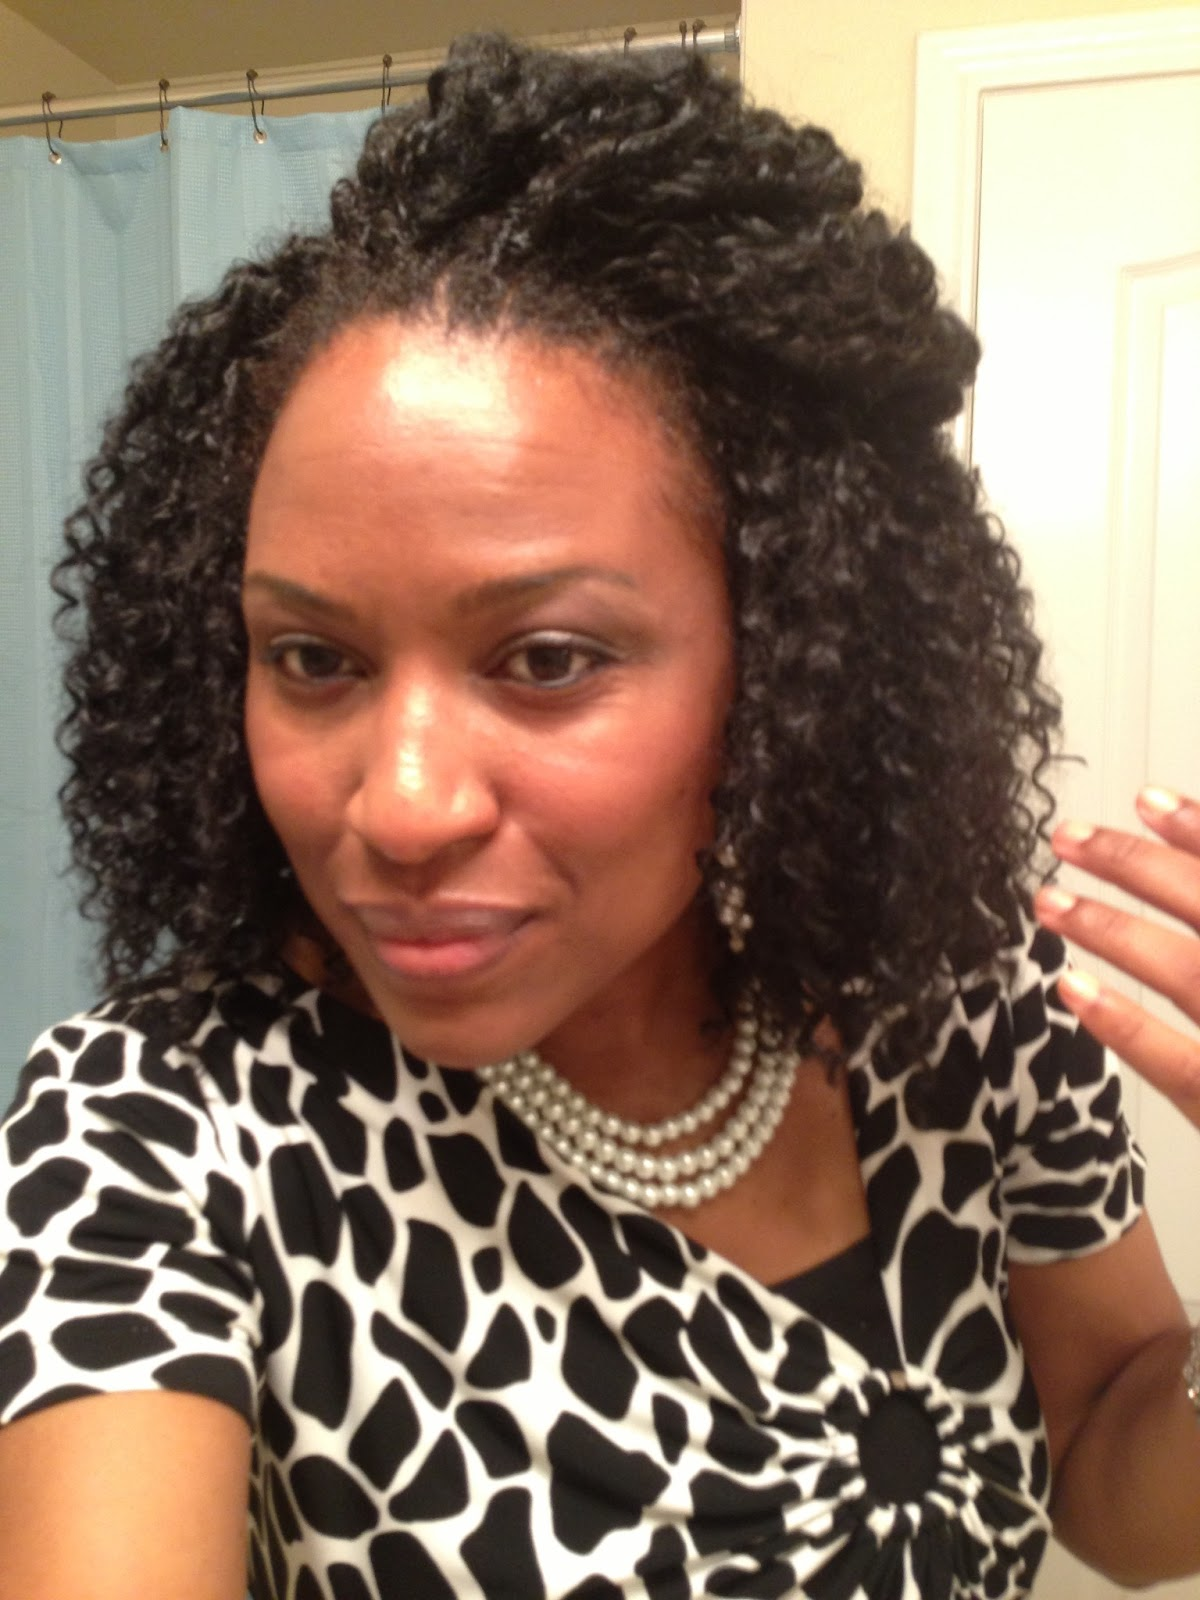 Crocheting Straight Hair : Crochet Braids Straight Hair Ive had my crochet braids in